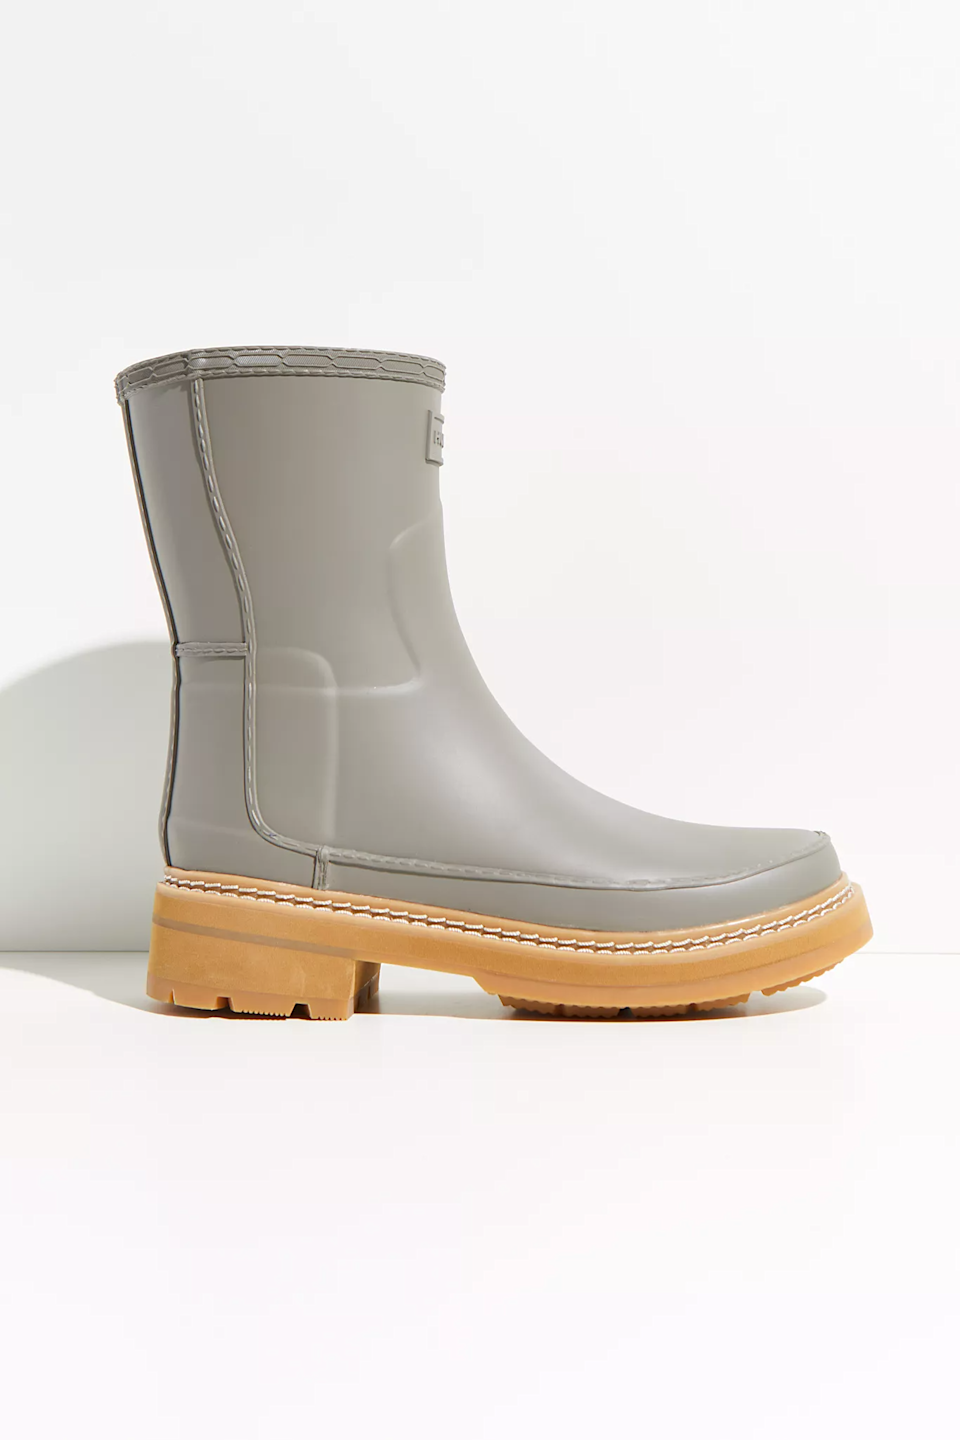 "<br><br><strong>Hunter</strong> Refined Stitch Short Wellies, $, available at <a href=""https://go.skimresources.com/?id=30283X879131&url=https%3A%2F%2Fwww.freepeople.com%2Fshop%2Fhunter-refined-stitch-short-wellies%2F%3Fcategory%3Dweather-boots%26color%3D004%26type%3DREGULAR%26quantity%3D1"" rel=""nofollow noopener"" target=""_blank"" data-ylk=""slk:Free People"" class=""link rapid-noclick-resp"">Free People</a>"